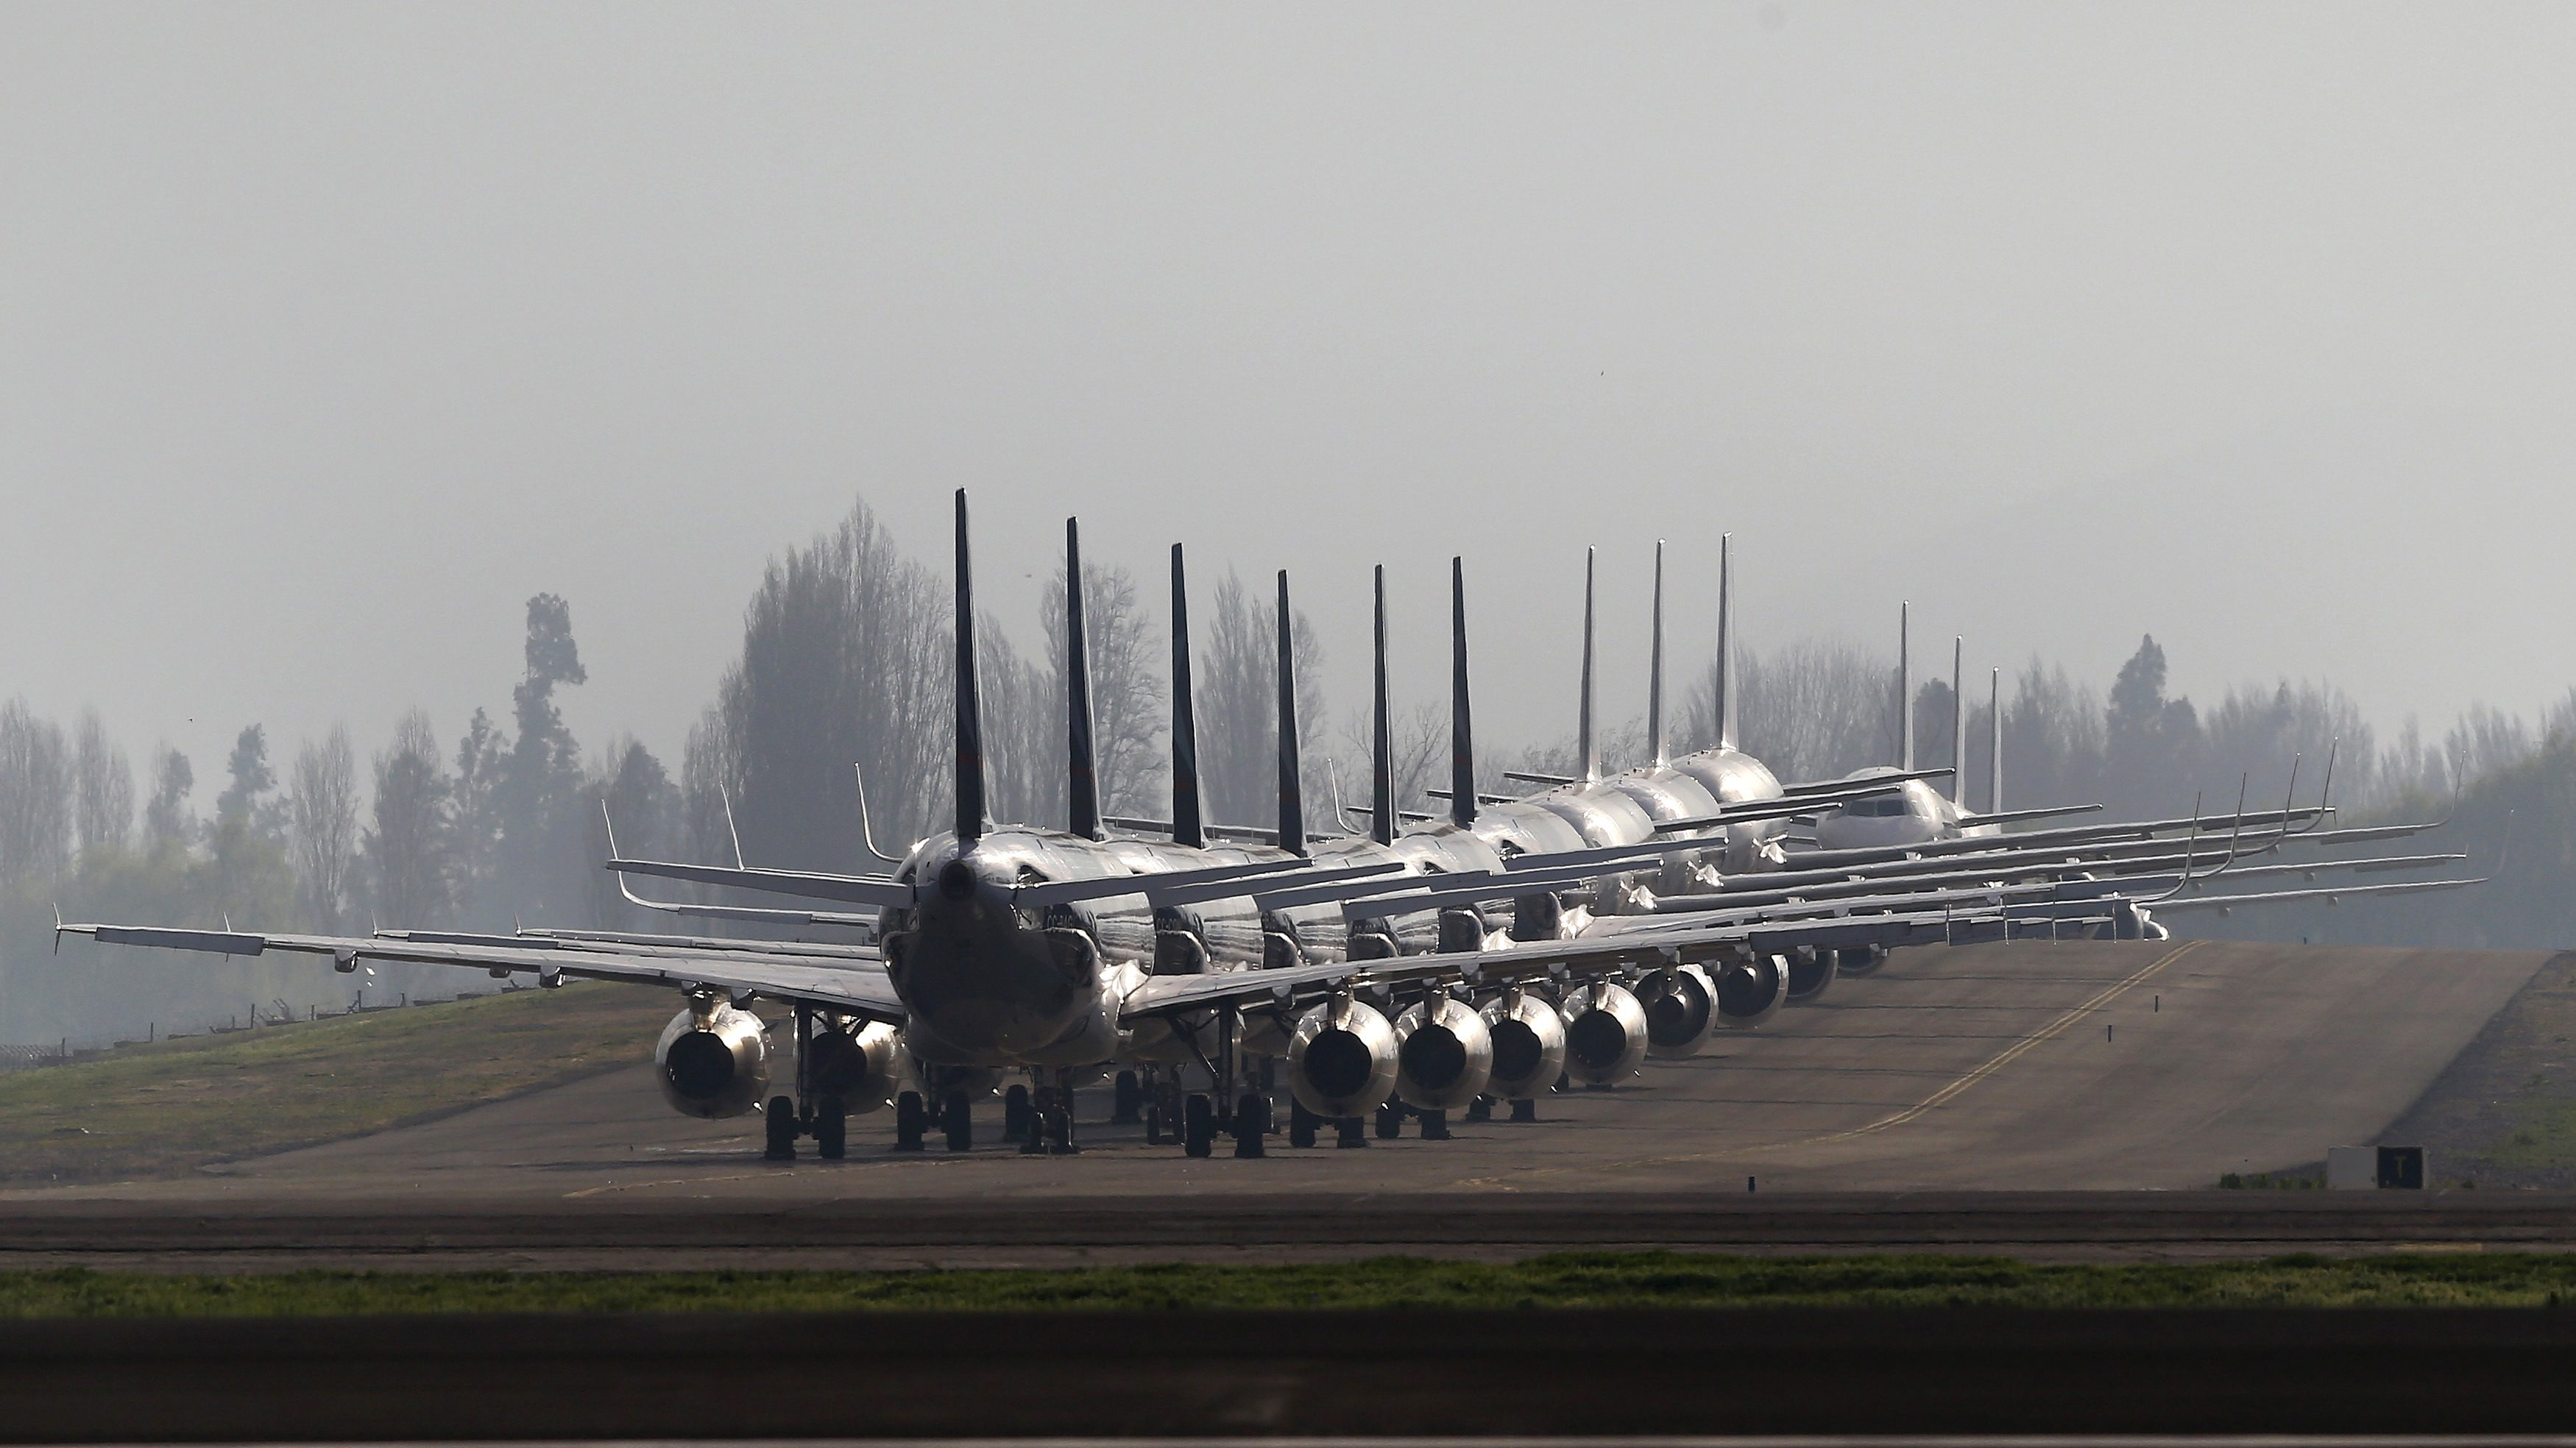 Planes are parked next to a landing track at the international airport of Santiago city, Chile, September 15, 2015.